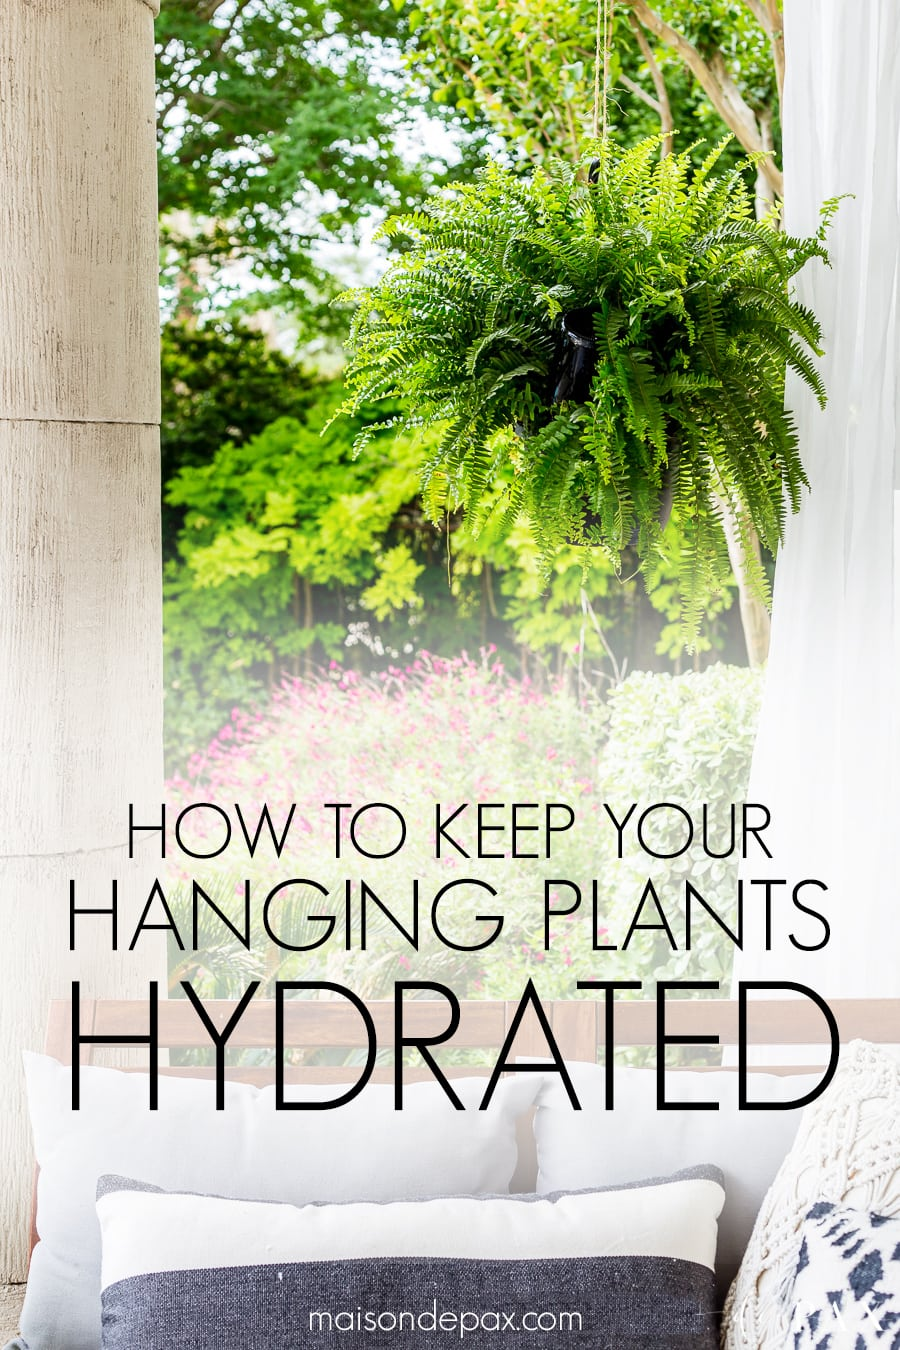 Learn how to make a wine bottle plant waterer to keep your hanging plants hydrated and your patio gorgeous this summer! #winebottlewaterer #winebottle #upcycle #garden #gardening #diygardening #hangingplants #bostonfern #summergarden